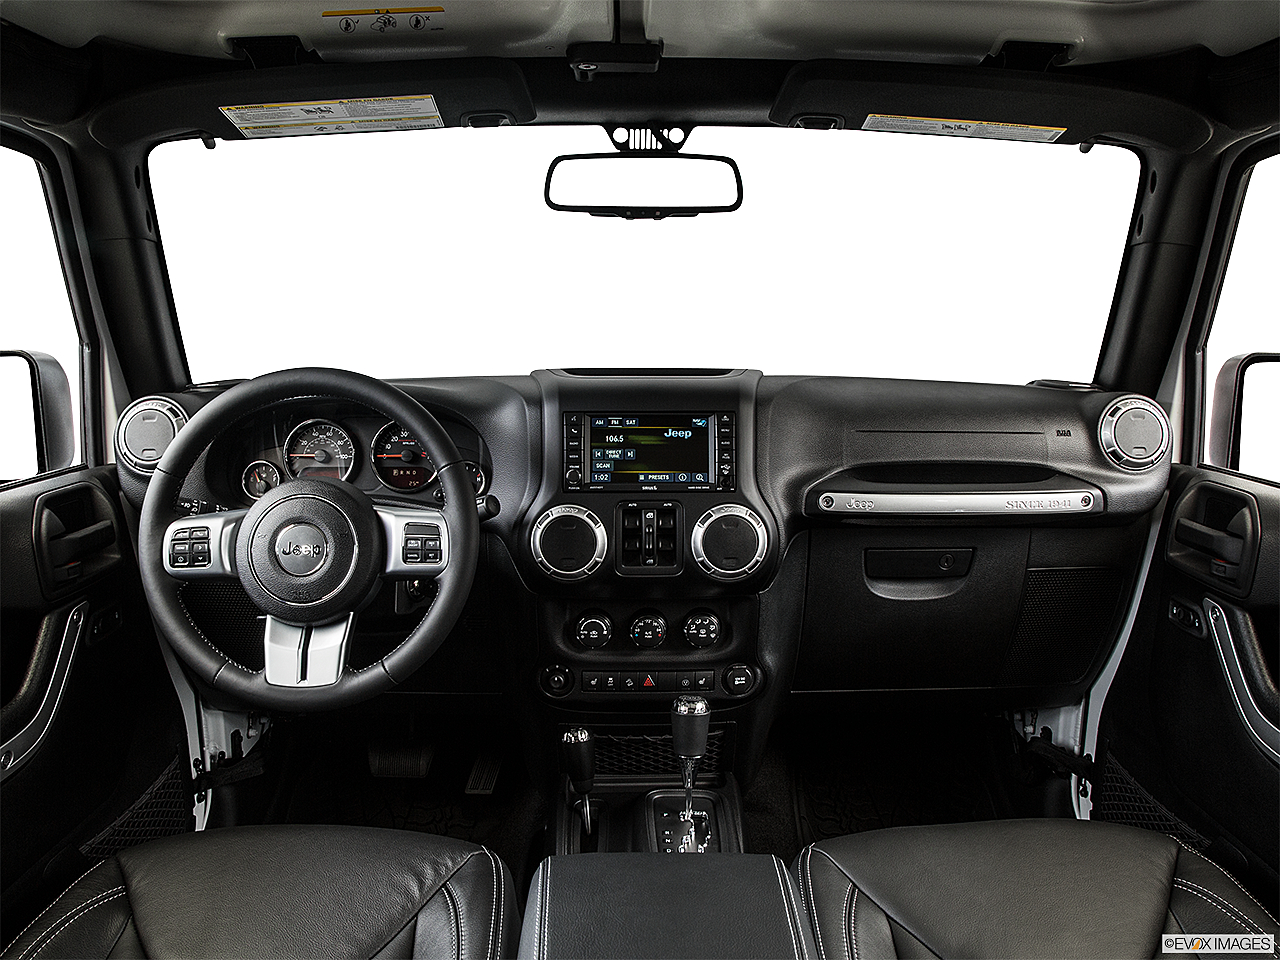 2015 Jeep Wrangler Inside >> 2015 Jeep Wrangler Unlimited 4x4 Rubicon Hard Rock 4dr Suv